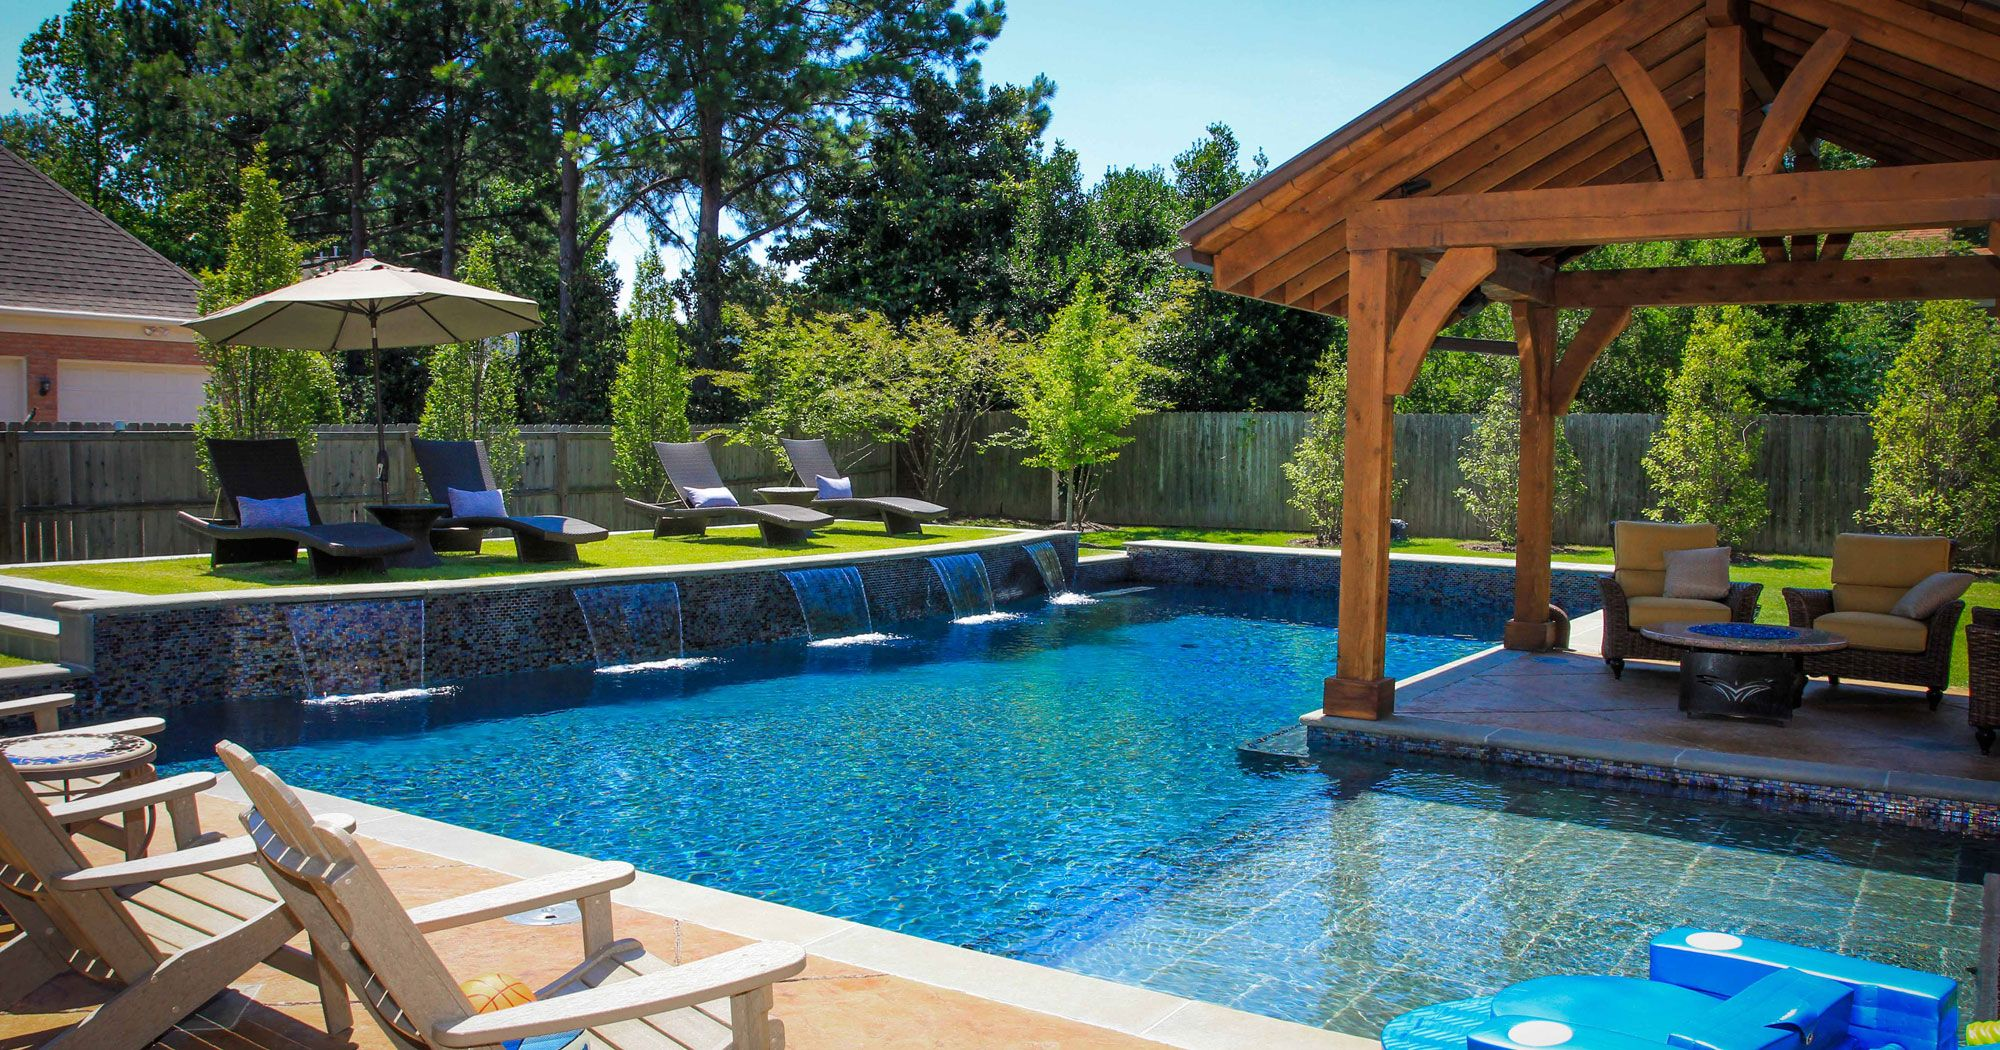 20 Backyard Pool Ideas For The Wealthy Homeowner Small Backyard